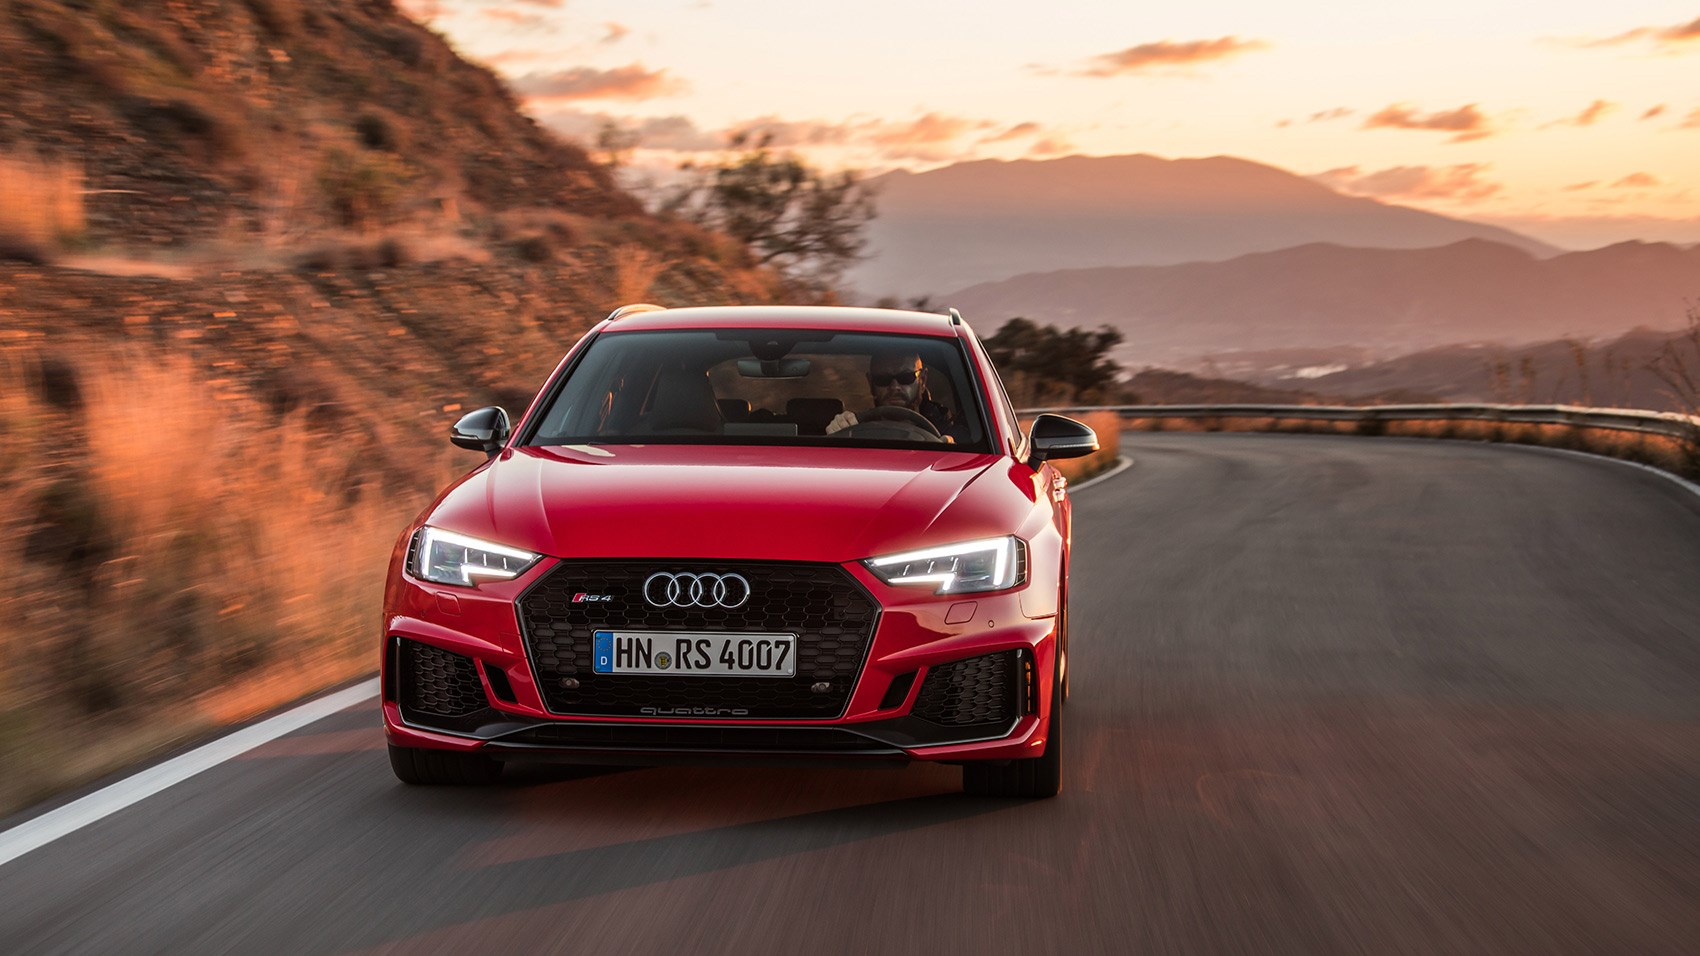 Audi A4 Lease >> New Audi RS4 Avant (2018) review: RS5 thrills, with added ...